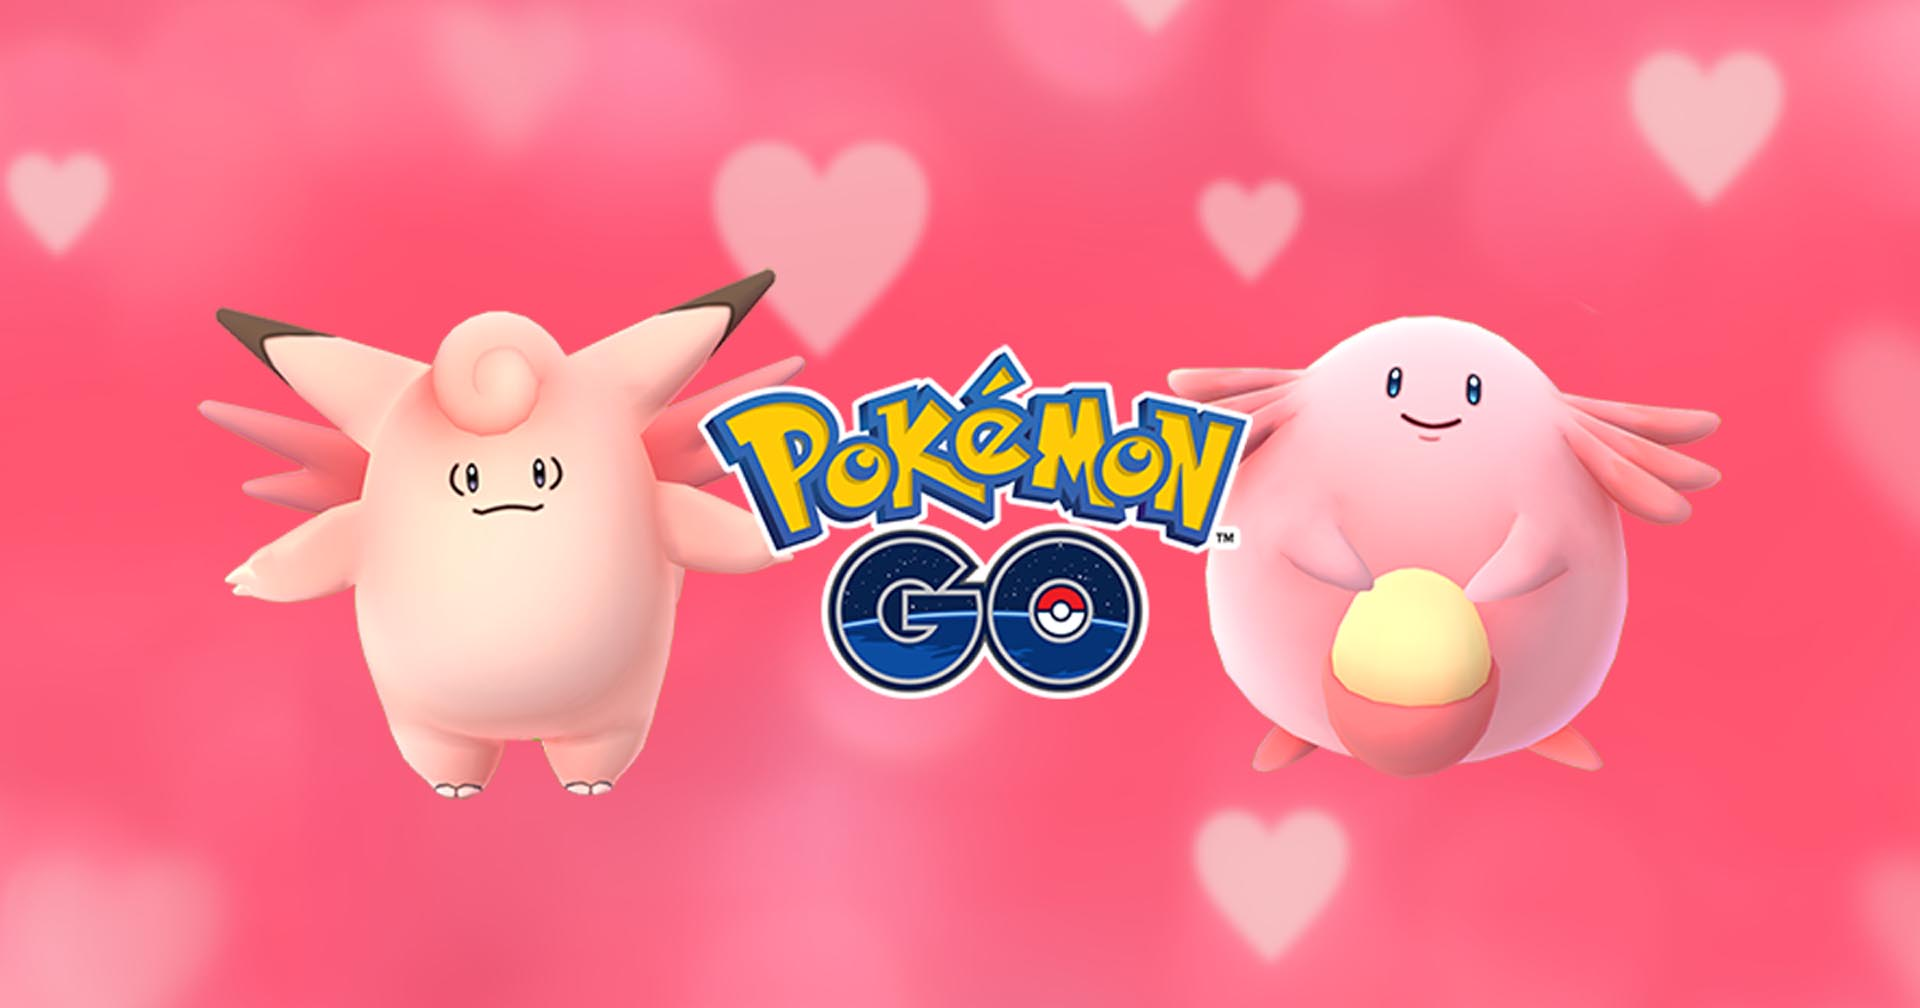 Pokémon Go Valentinstag-In-Game-Event